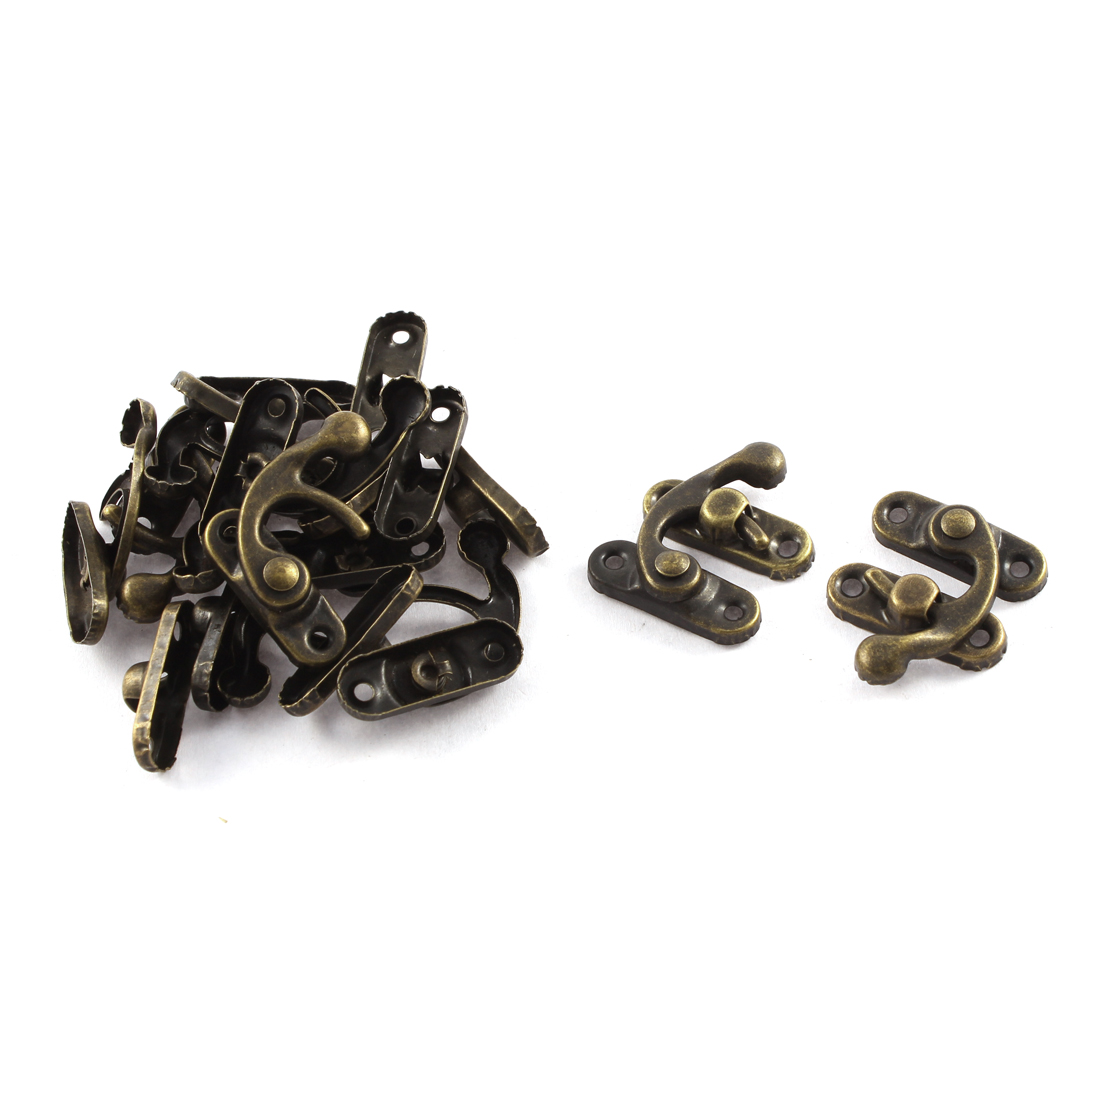 10 Pcs Retro Style Swing Bag Clasp Closure Lock Suitcase Box Latch Bronze Tone